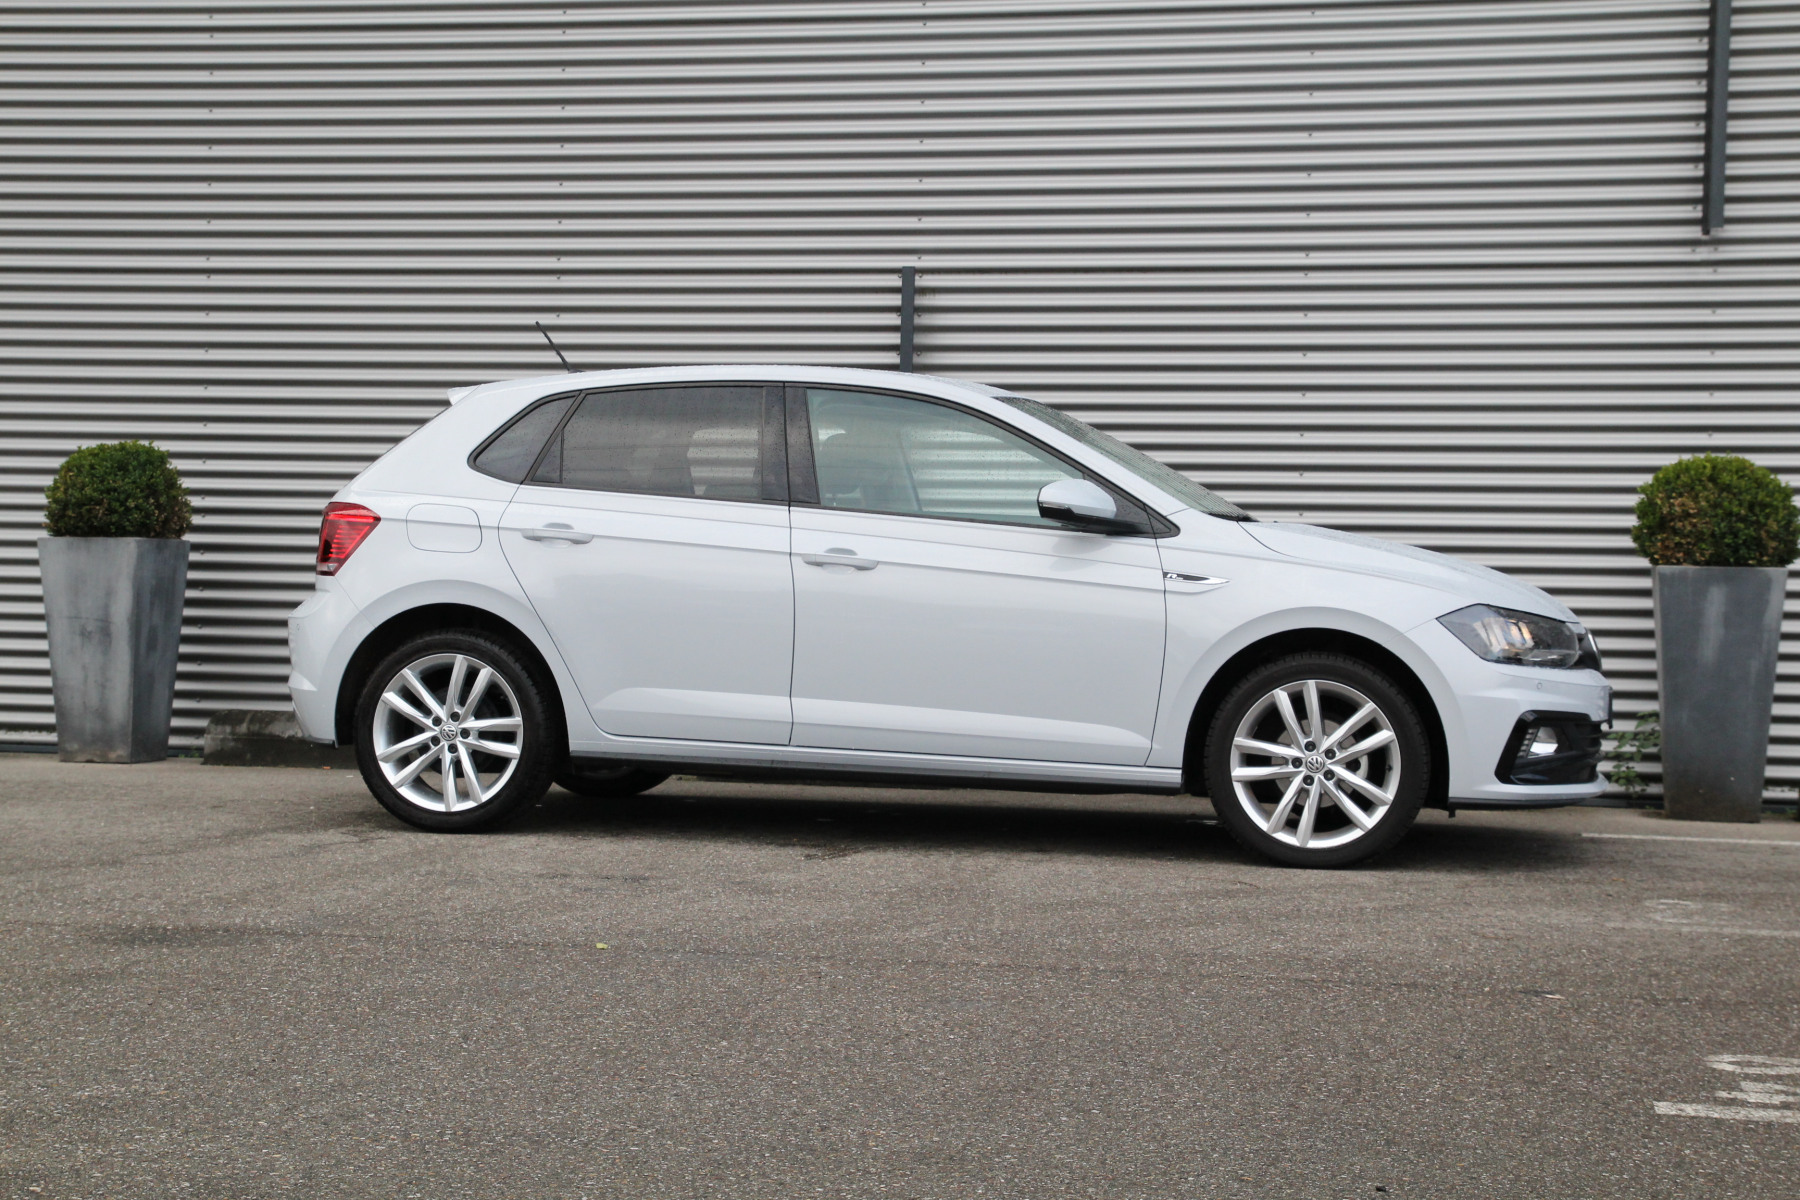 ZR-551-F Volkswagen Polo TSI Highline - Leasespecial